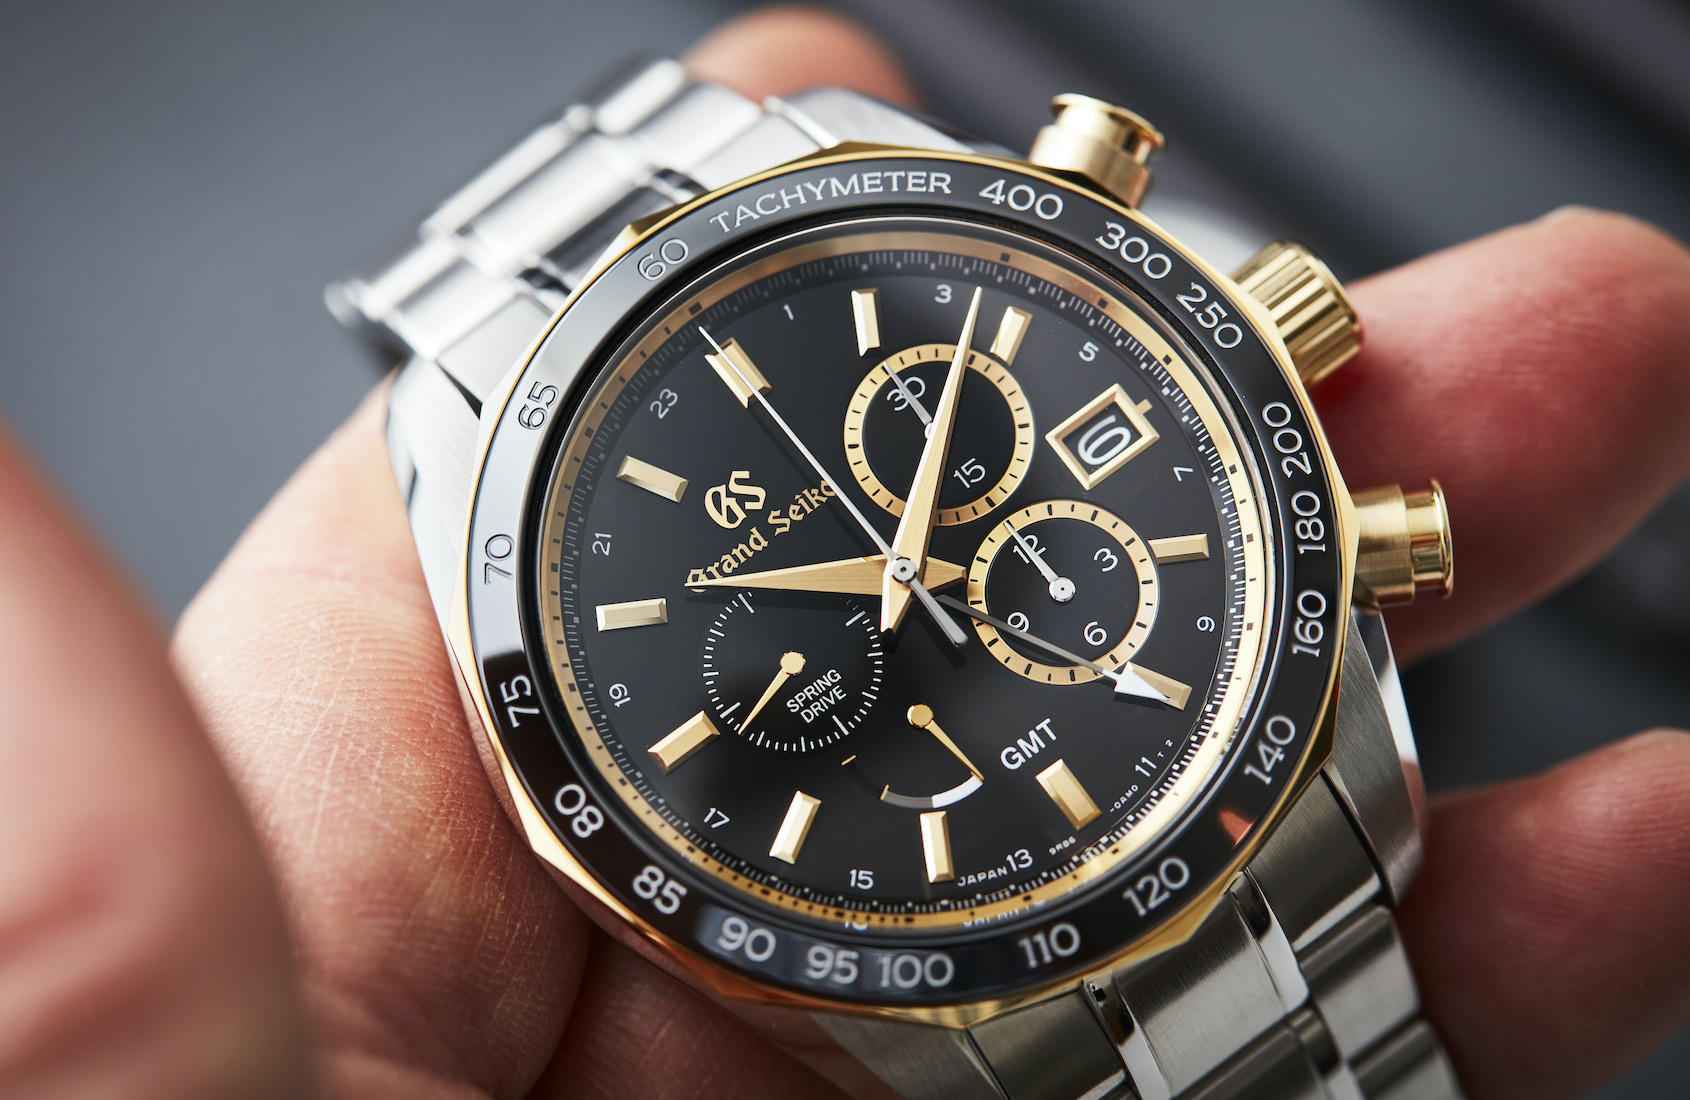 HANDS-ON: The Grand Seiko SBGC240 140th Anniversary Limited Edition with newly developed polygonal bezel